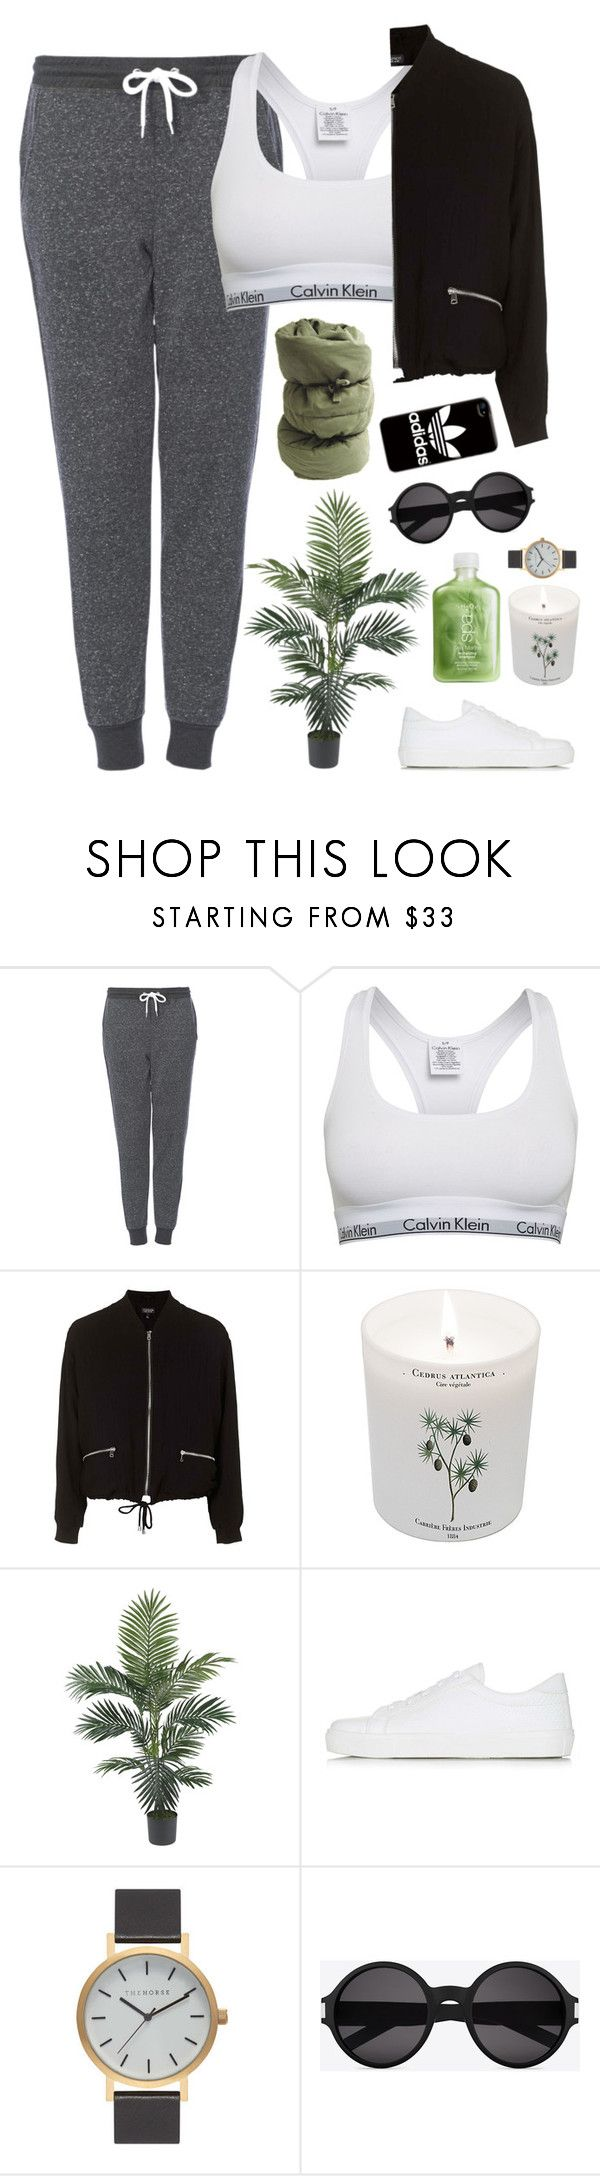 """Stay Up//Dyme-A-Duzin Ft.Kehlani"" by thelonelyheartsclub ❤ liked on Polyvore featuring Topshop, Calvin Klein, Carriere, The Horse, Yves Saint Laurent and adidas"